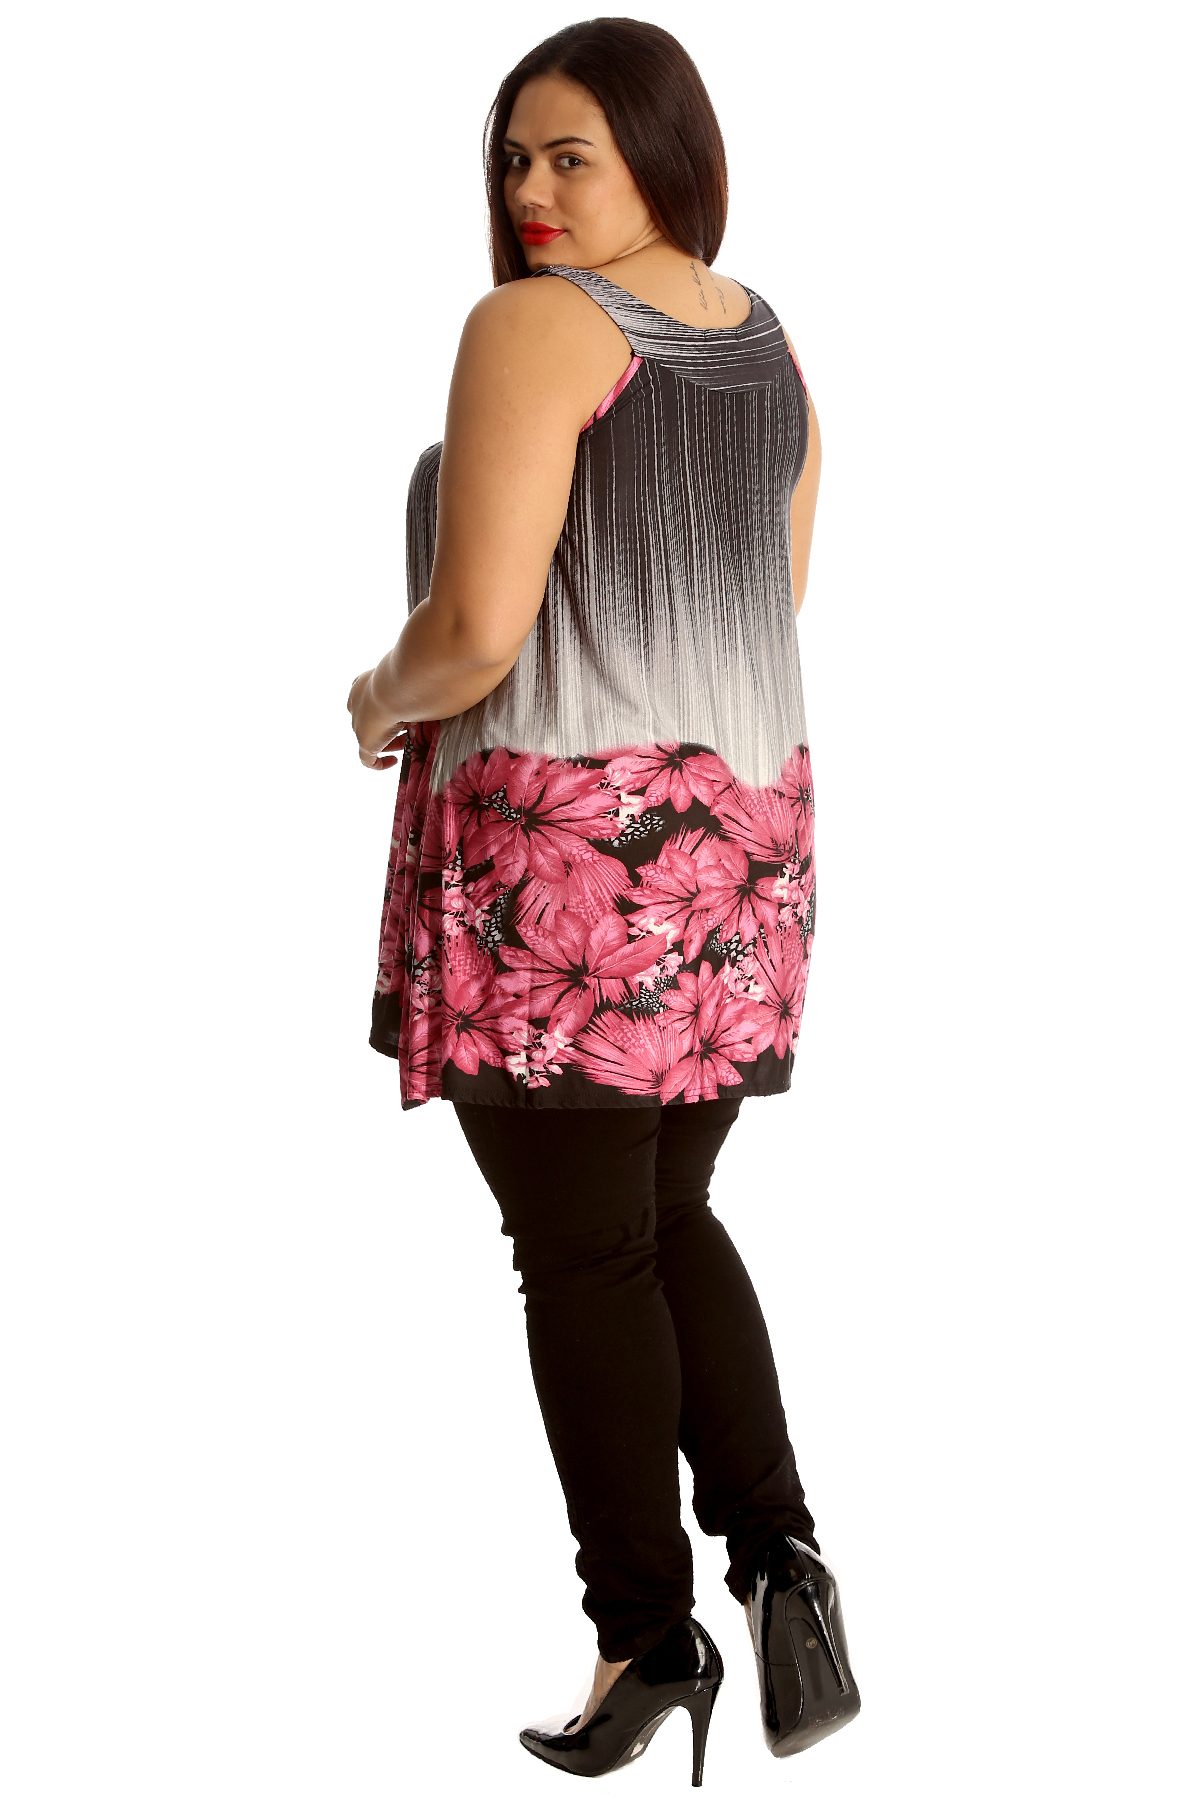 Details about  /New Womens Plus Size Top Studded Neck Flower Sleeveless Long Tunic Nouvelle